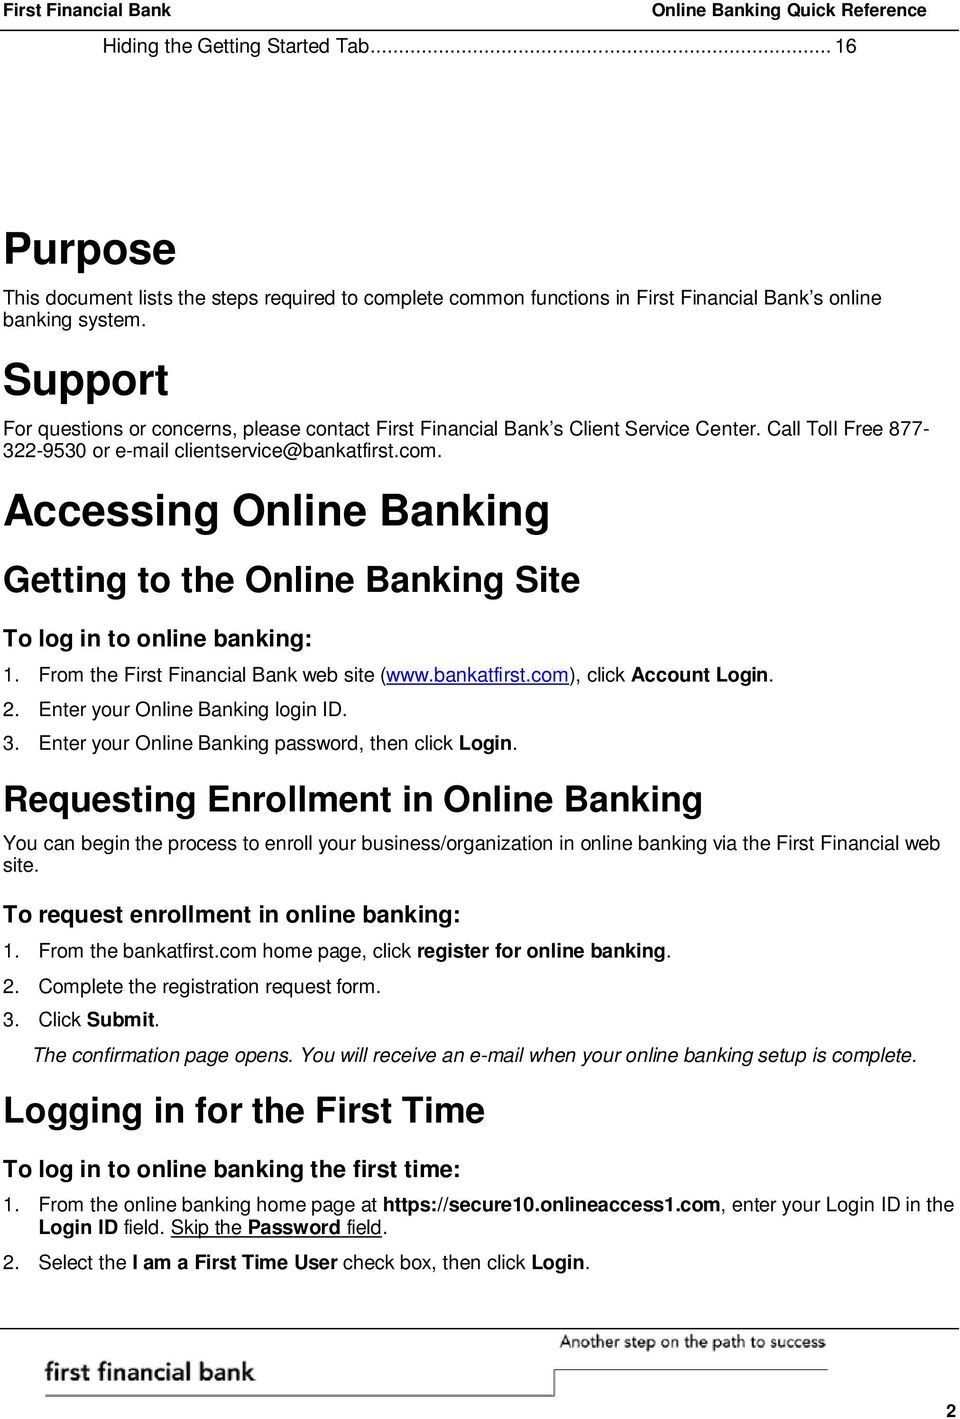 Accessing Online Banking Getting to the Online Banking Site To log in to online banking: 1. From the First Financial Bank web site (www.bankatfirst.com), click Account Login. 2.